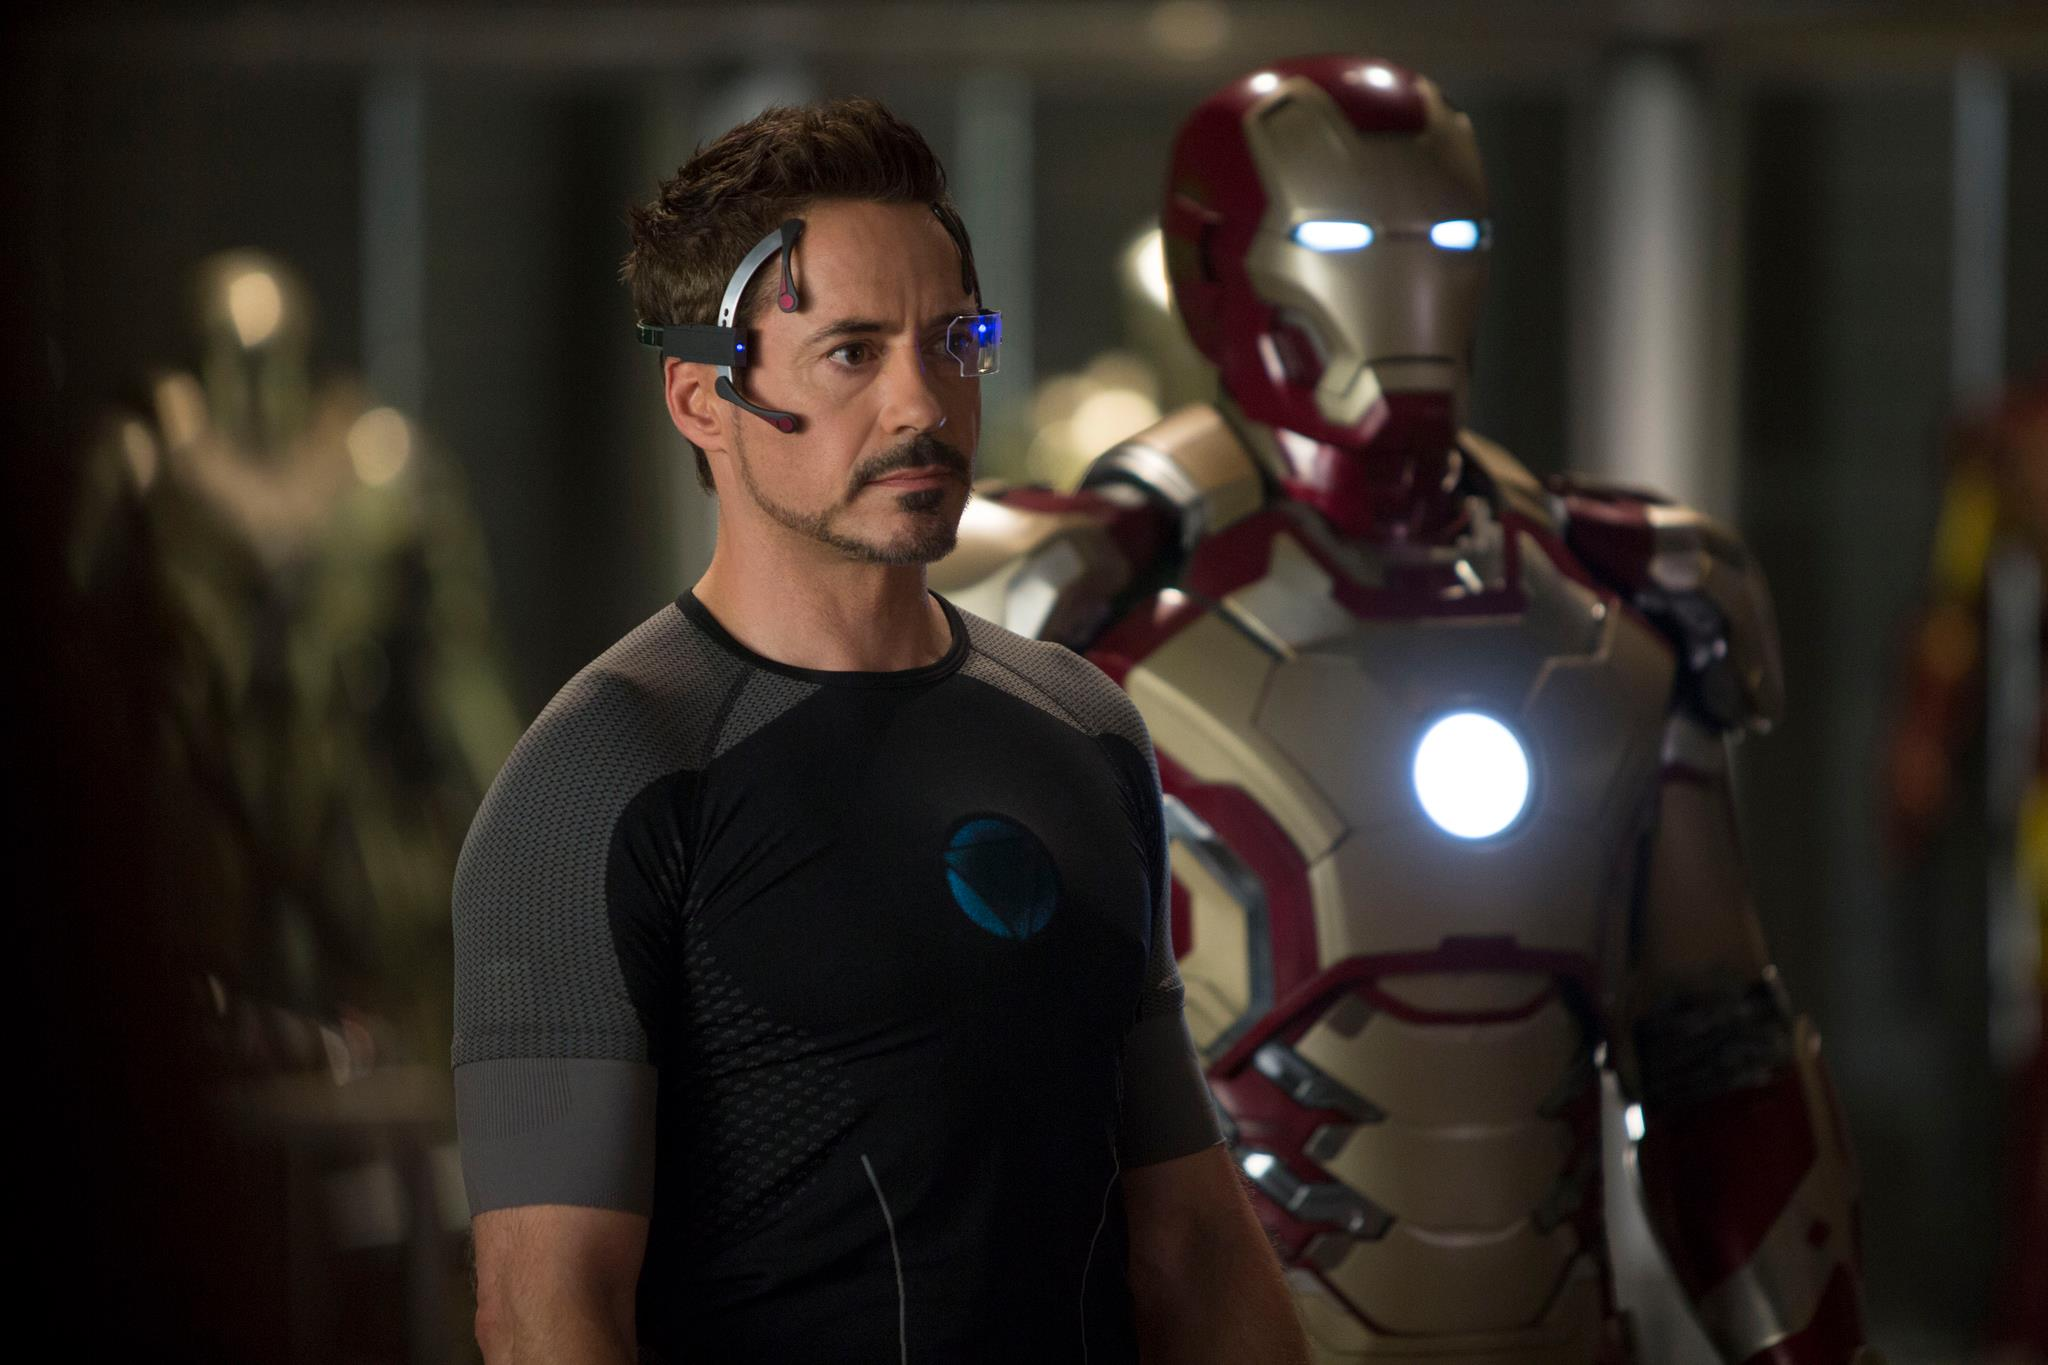 Could Ty Simpkins End Up Replacing Robert Downey Jr. as Iron Man After The Avengers 4? 2